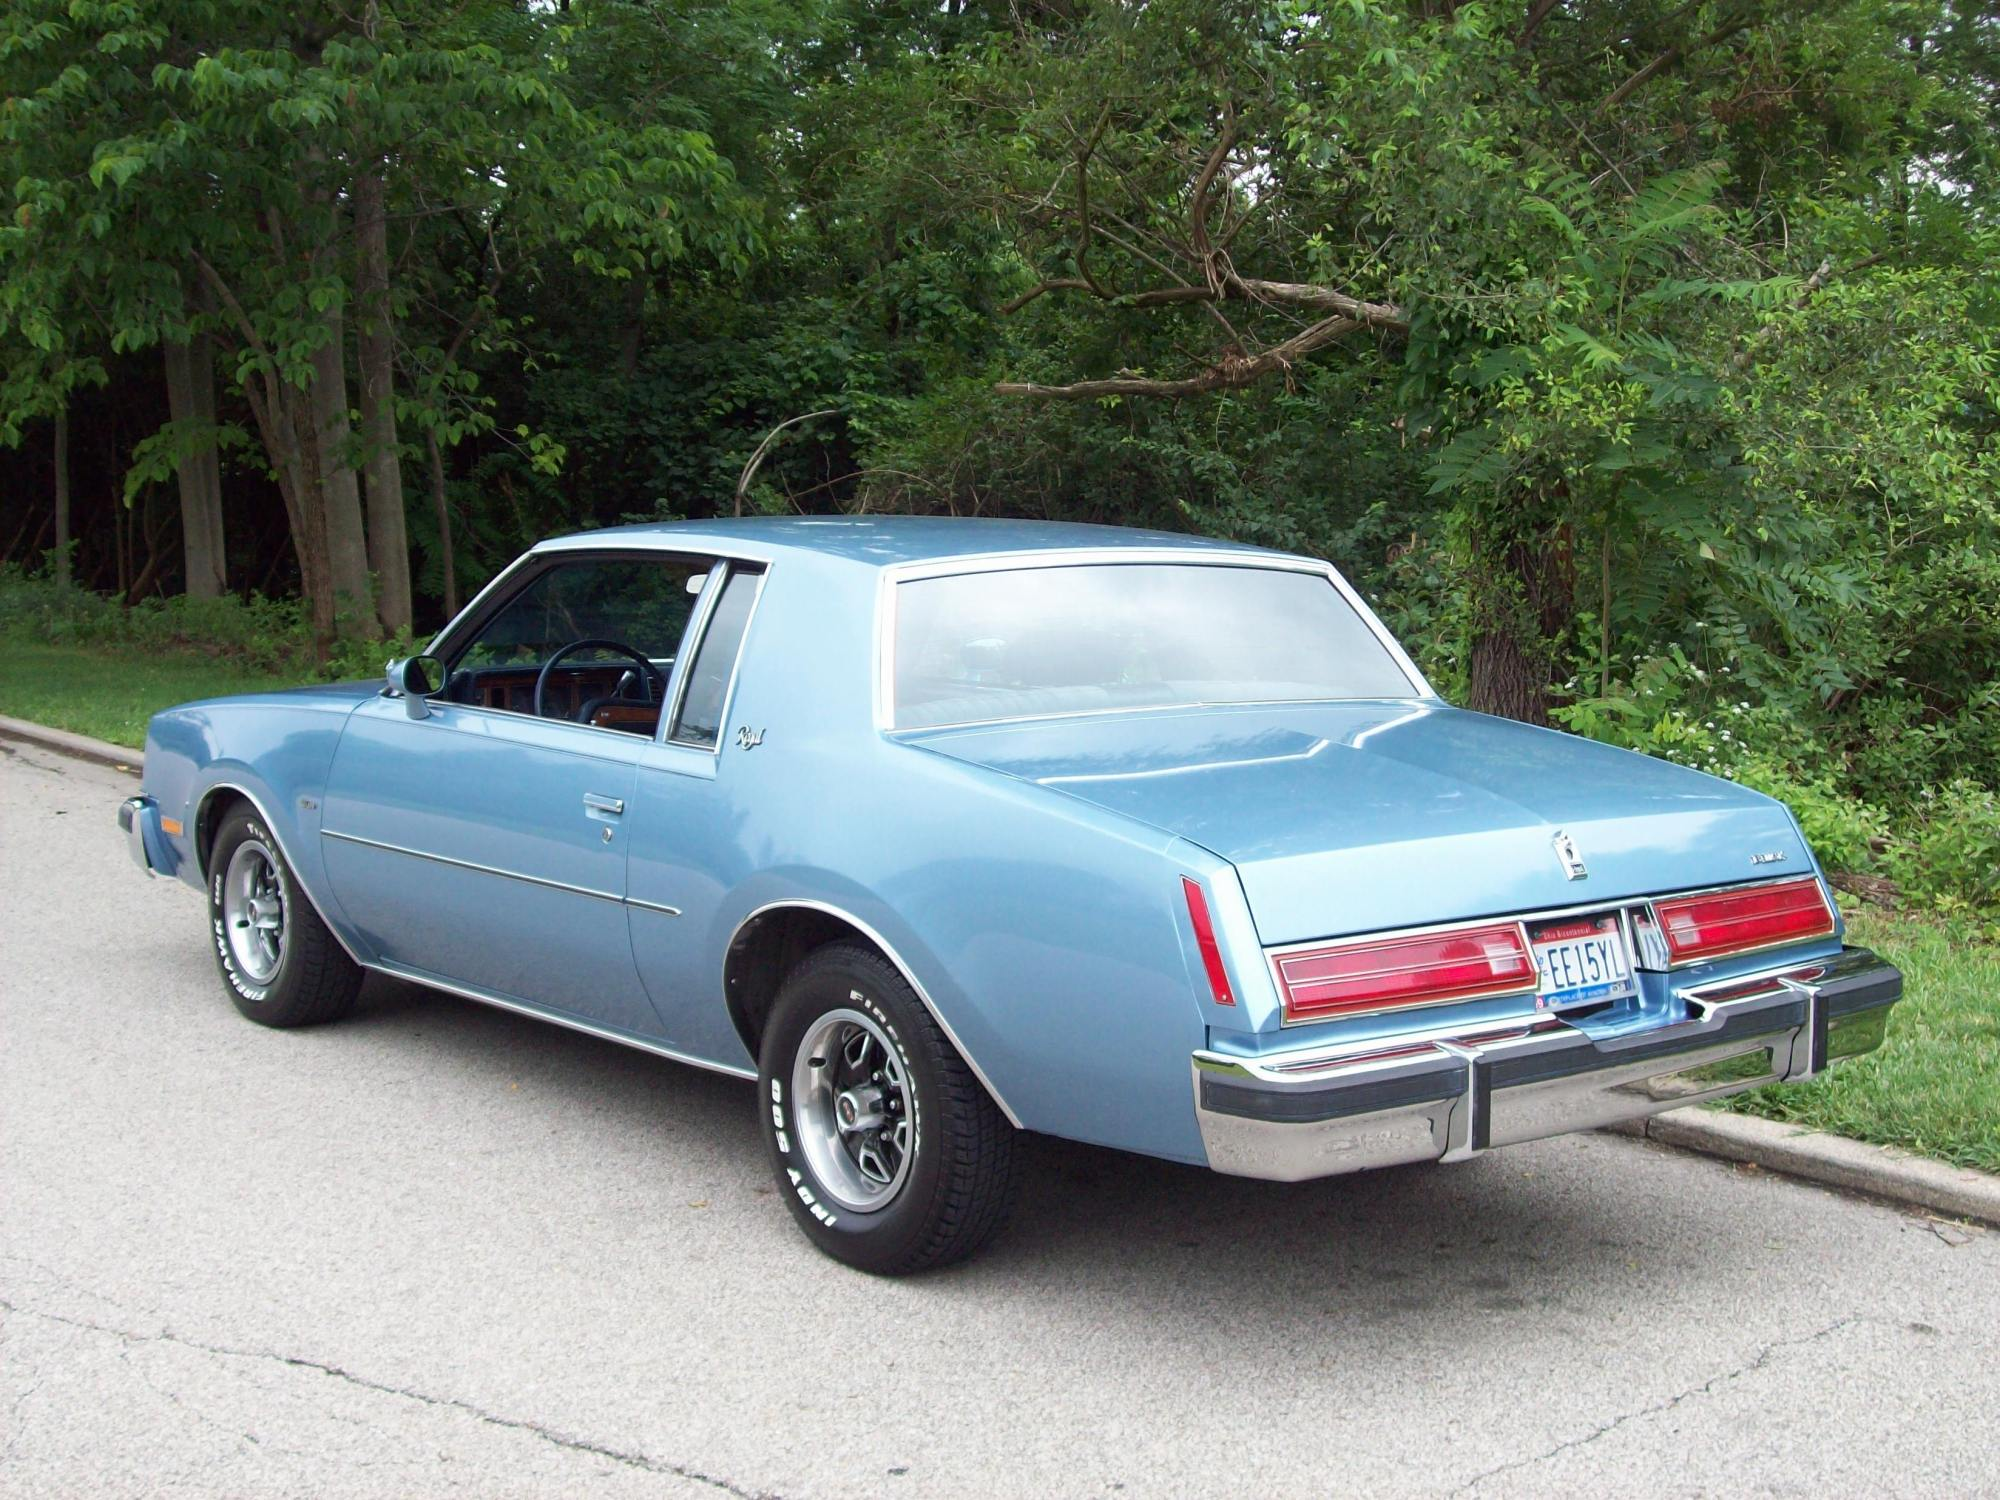 hight resolution of another iamdaver1 1980 buick regal post